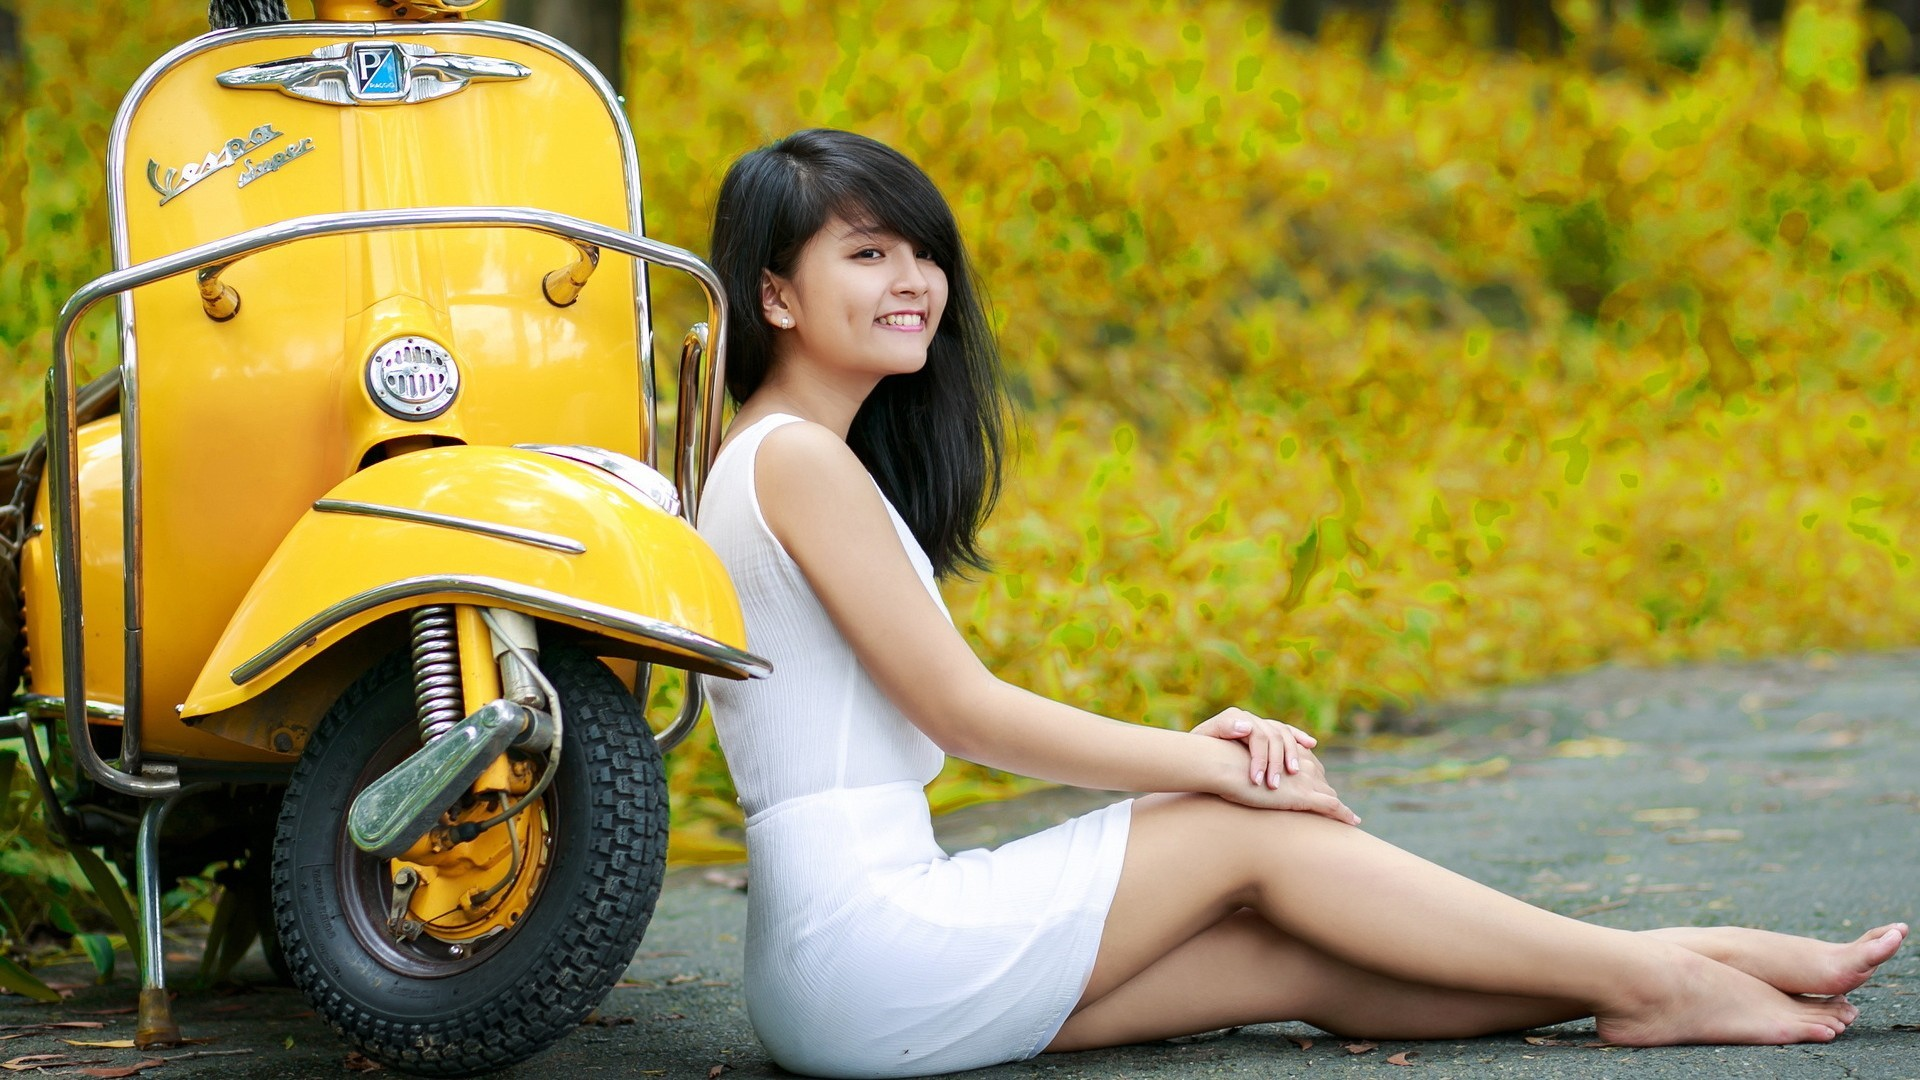 People 1920x1080 Asian Vespa yellow white dress scooters women with scooters women model barefoot sitting legs women outdoors dark hair black hair smiling dress yellow dress